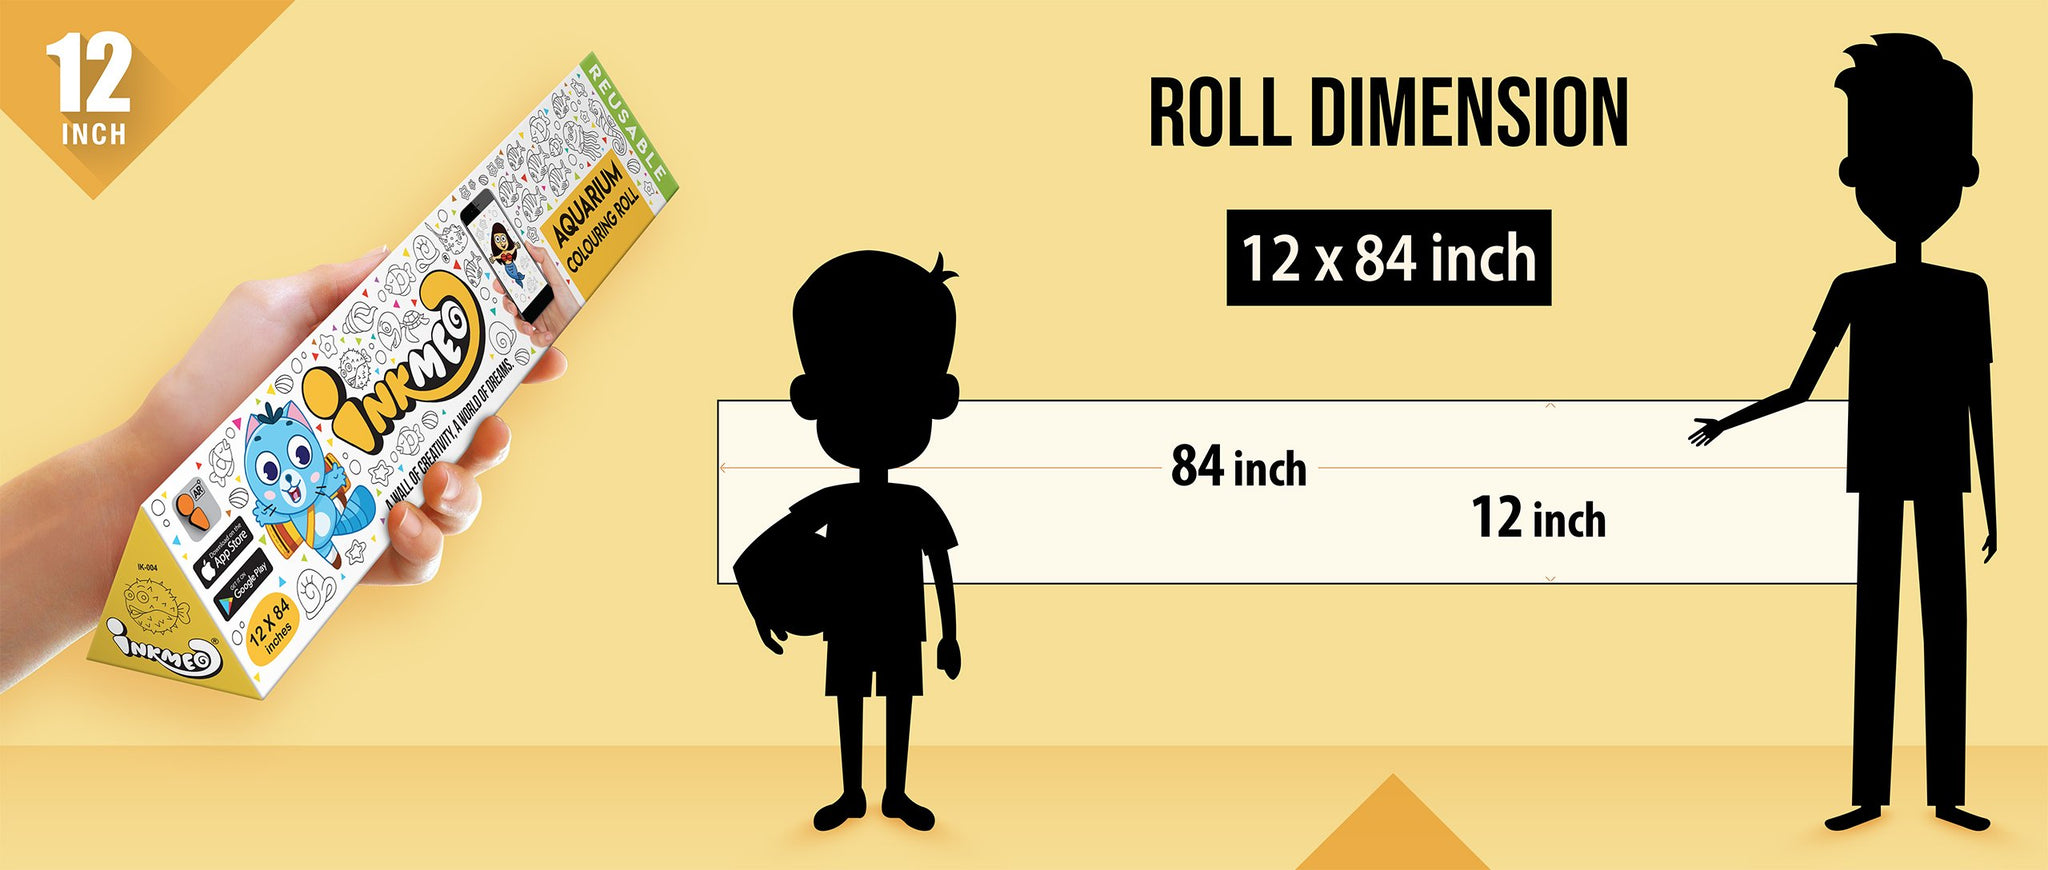 12 Inch Roll Dimension